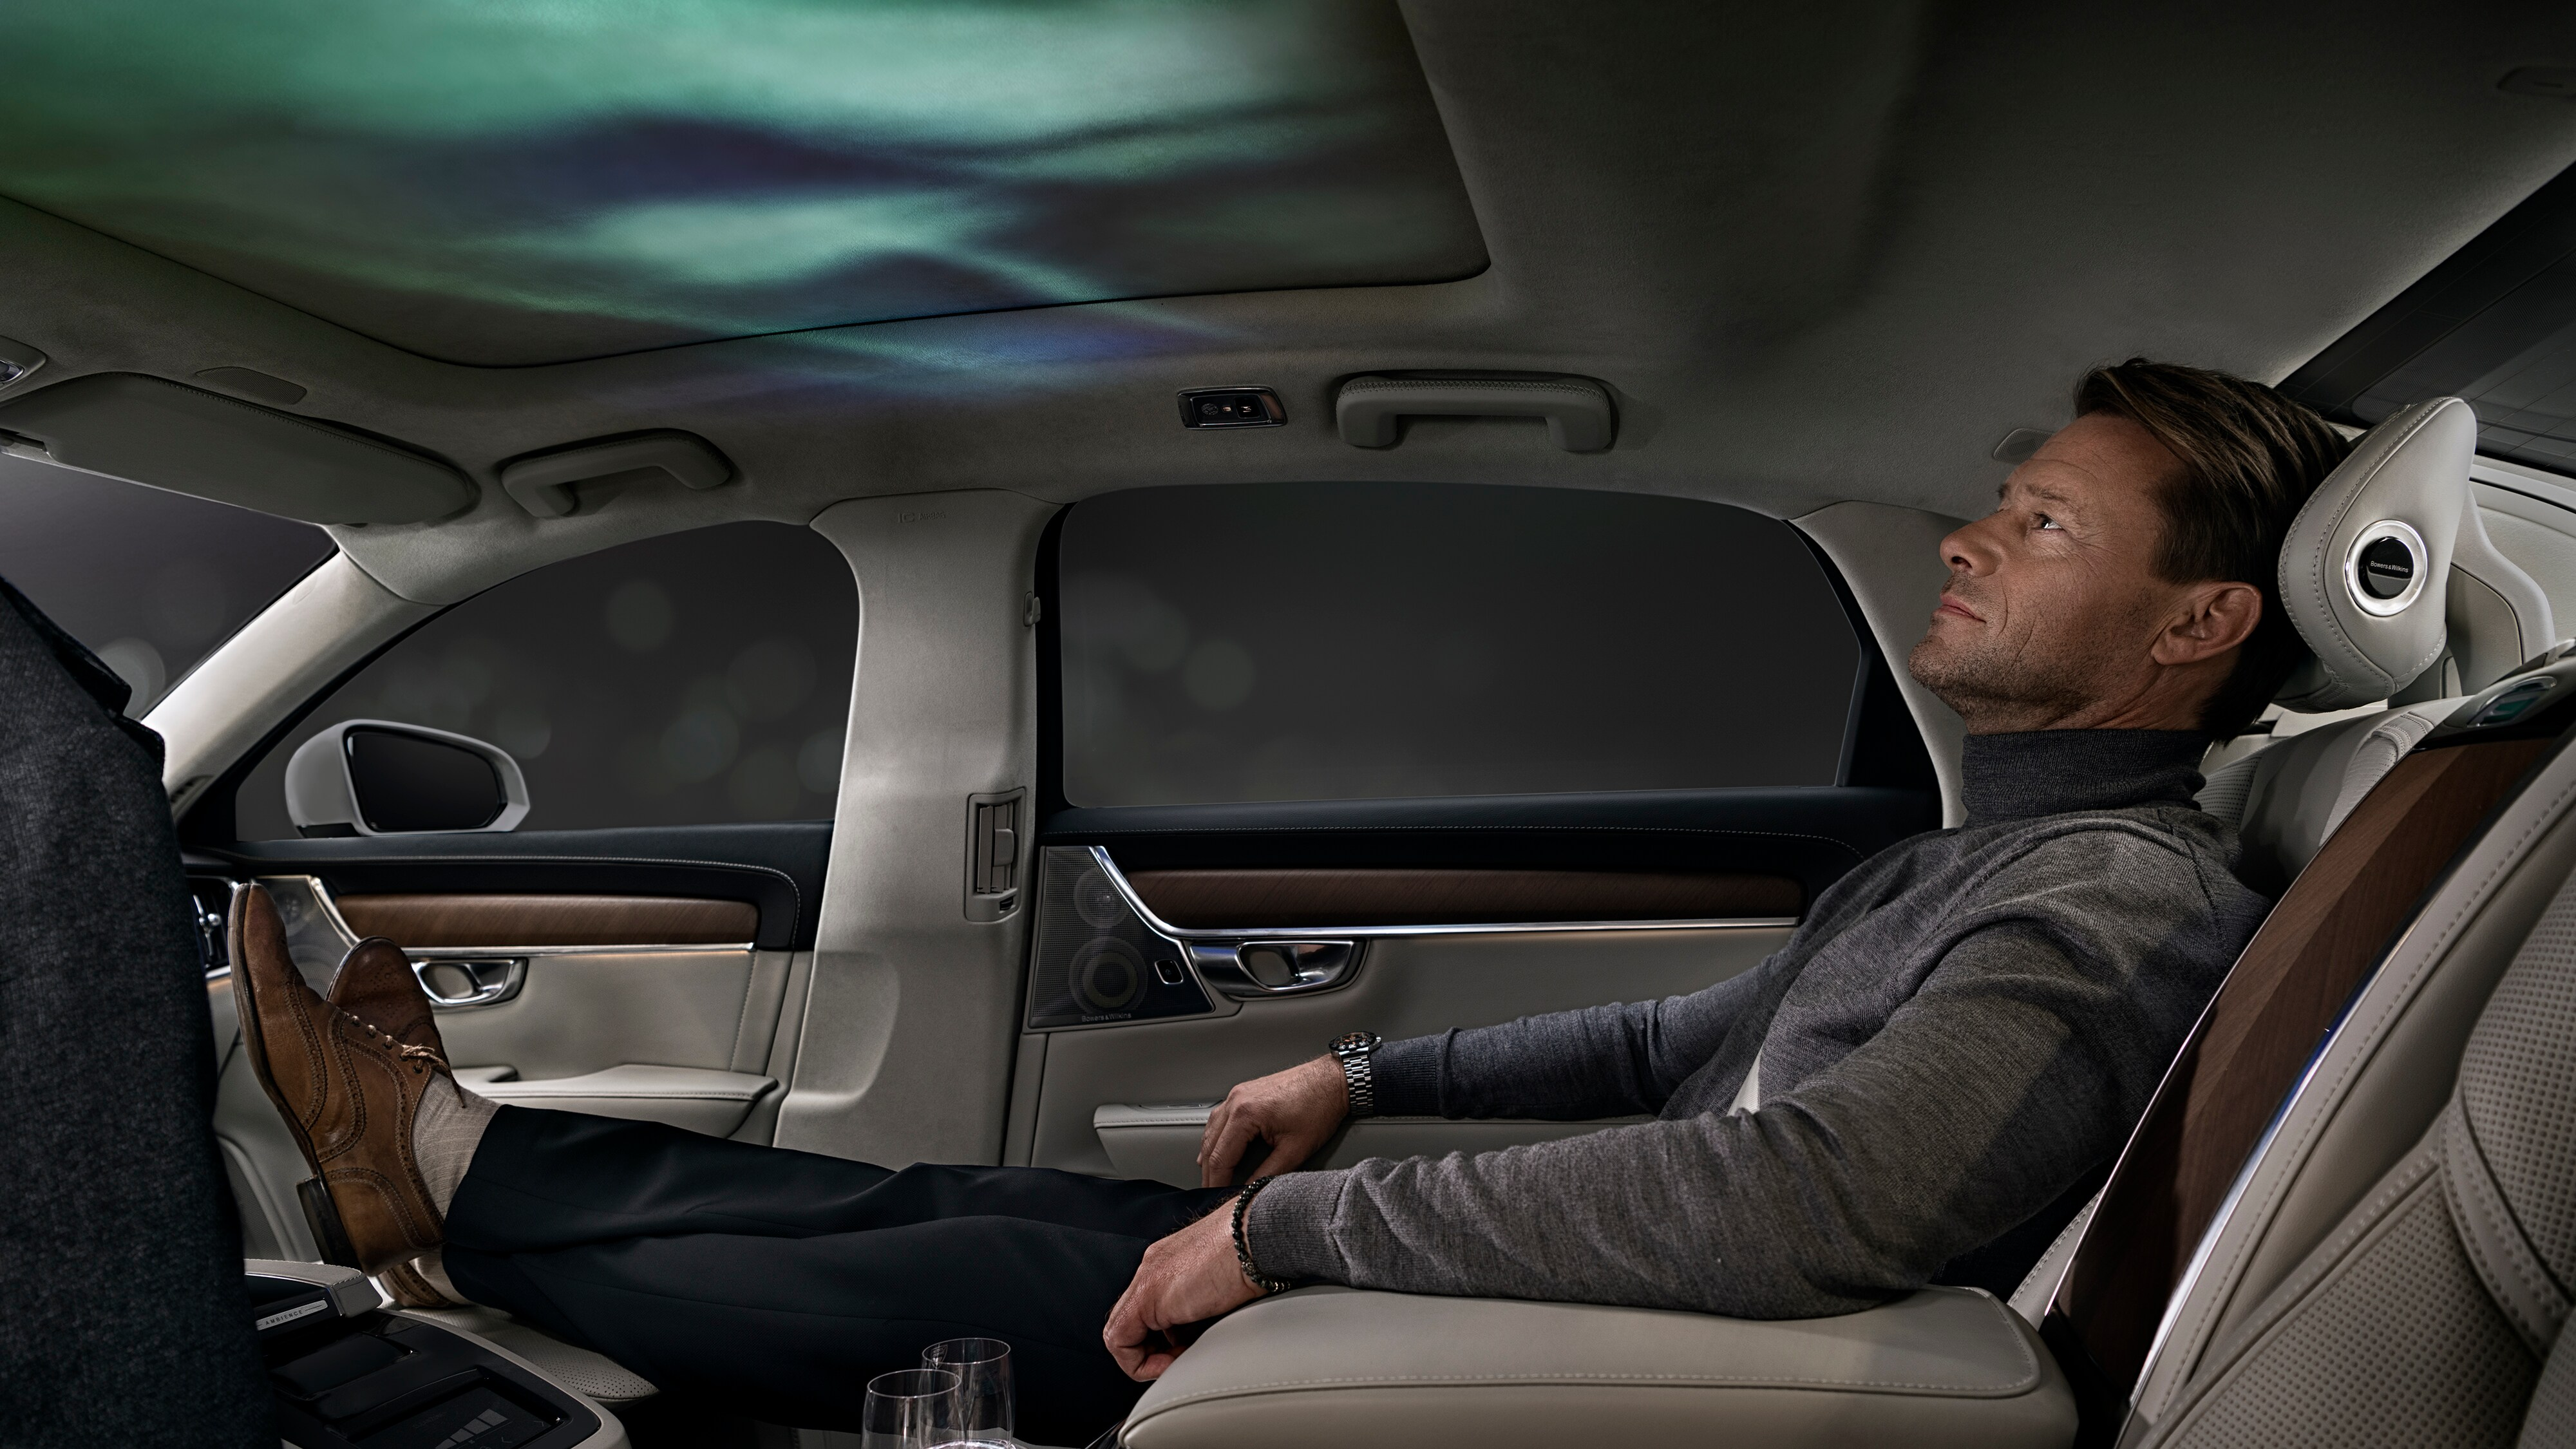 A Volvo owner relaxes in his Volvo enjoying the Ambience Interior.